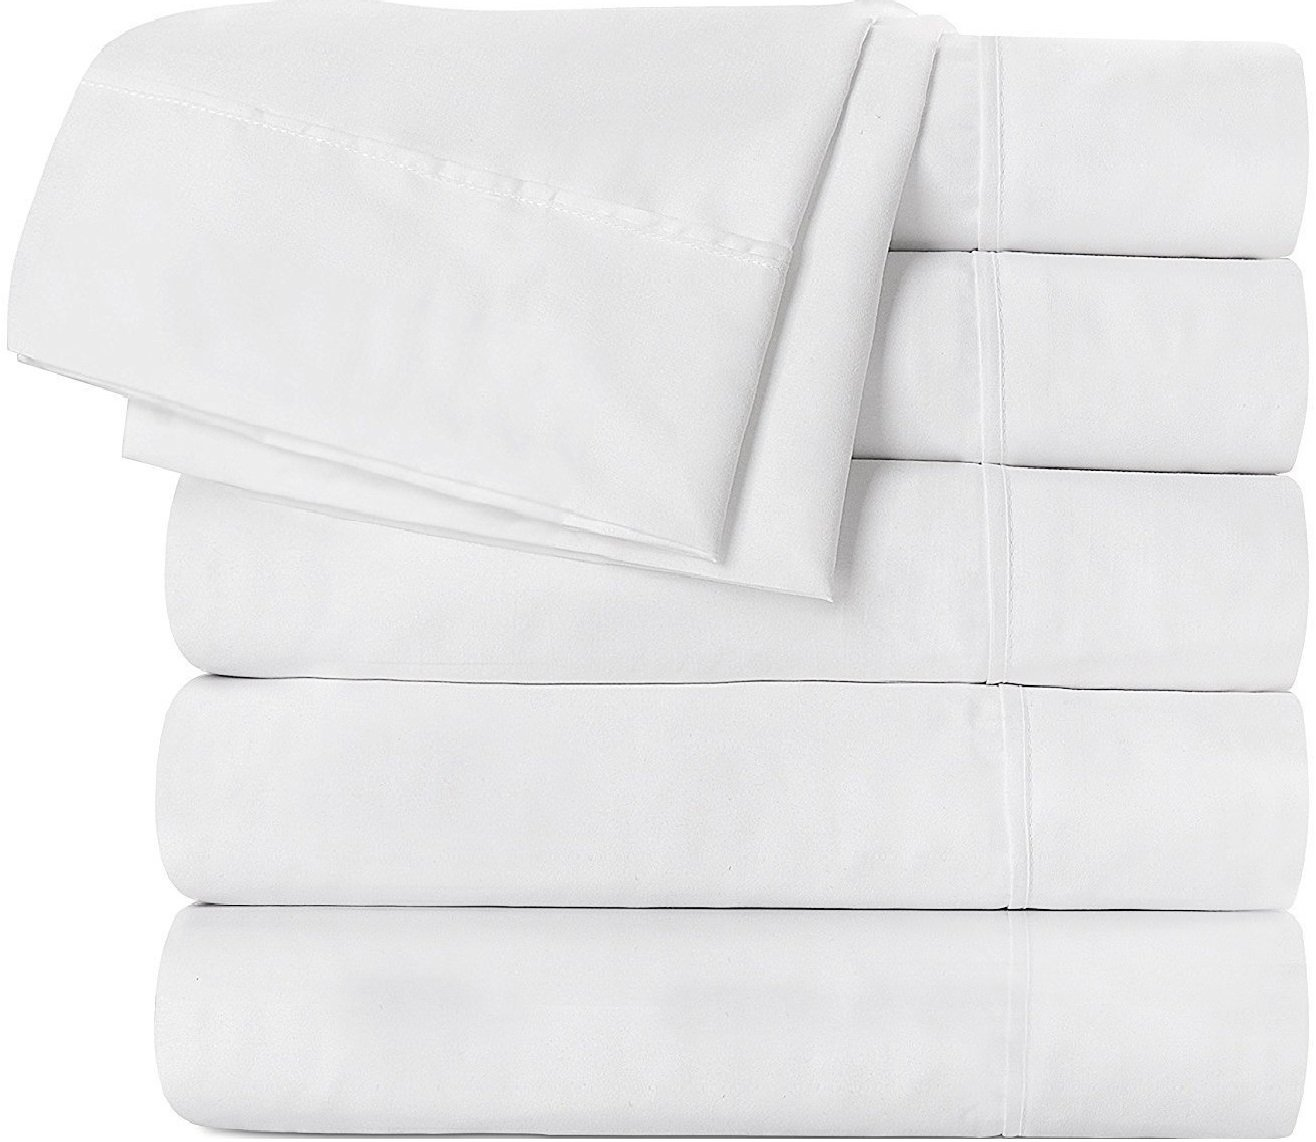 Flat Sheet 6 Pack (Twin, White) Brushed Microfiber by Utopia Bedding